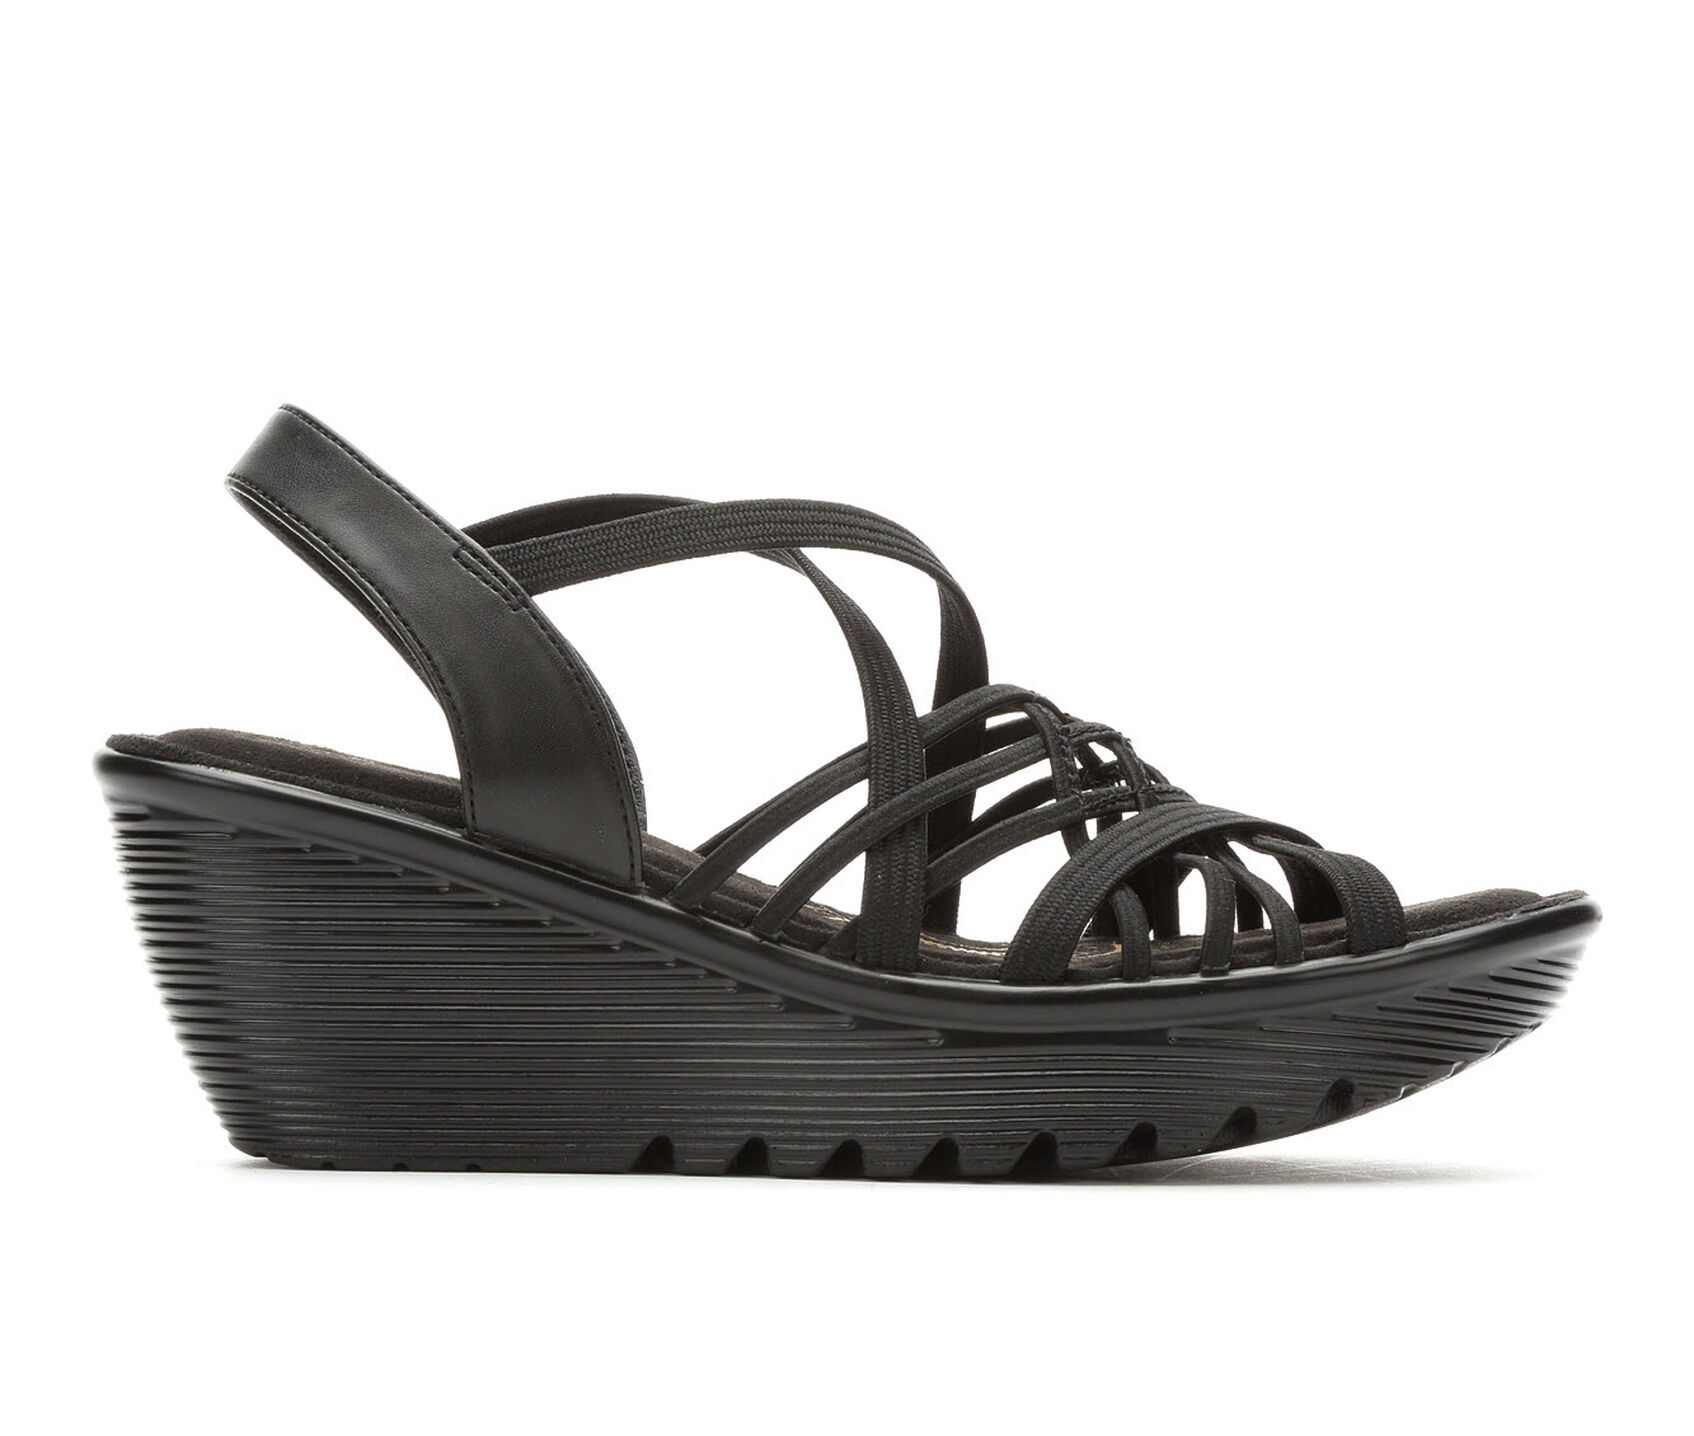 3a617b33f Women's Skechers Crossed Wires 41103 Strappy Wedge Sandals | Shoe ...